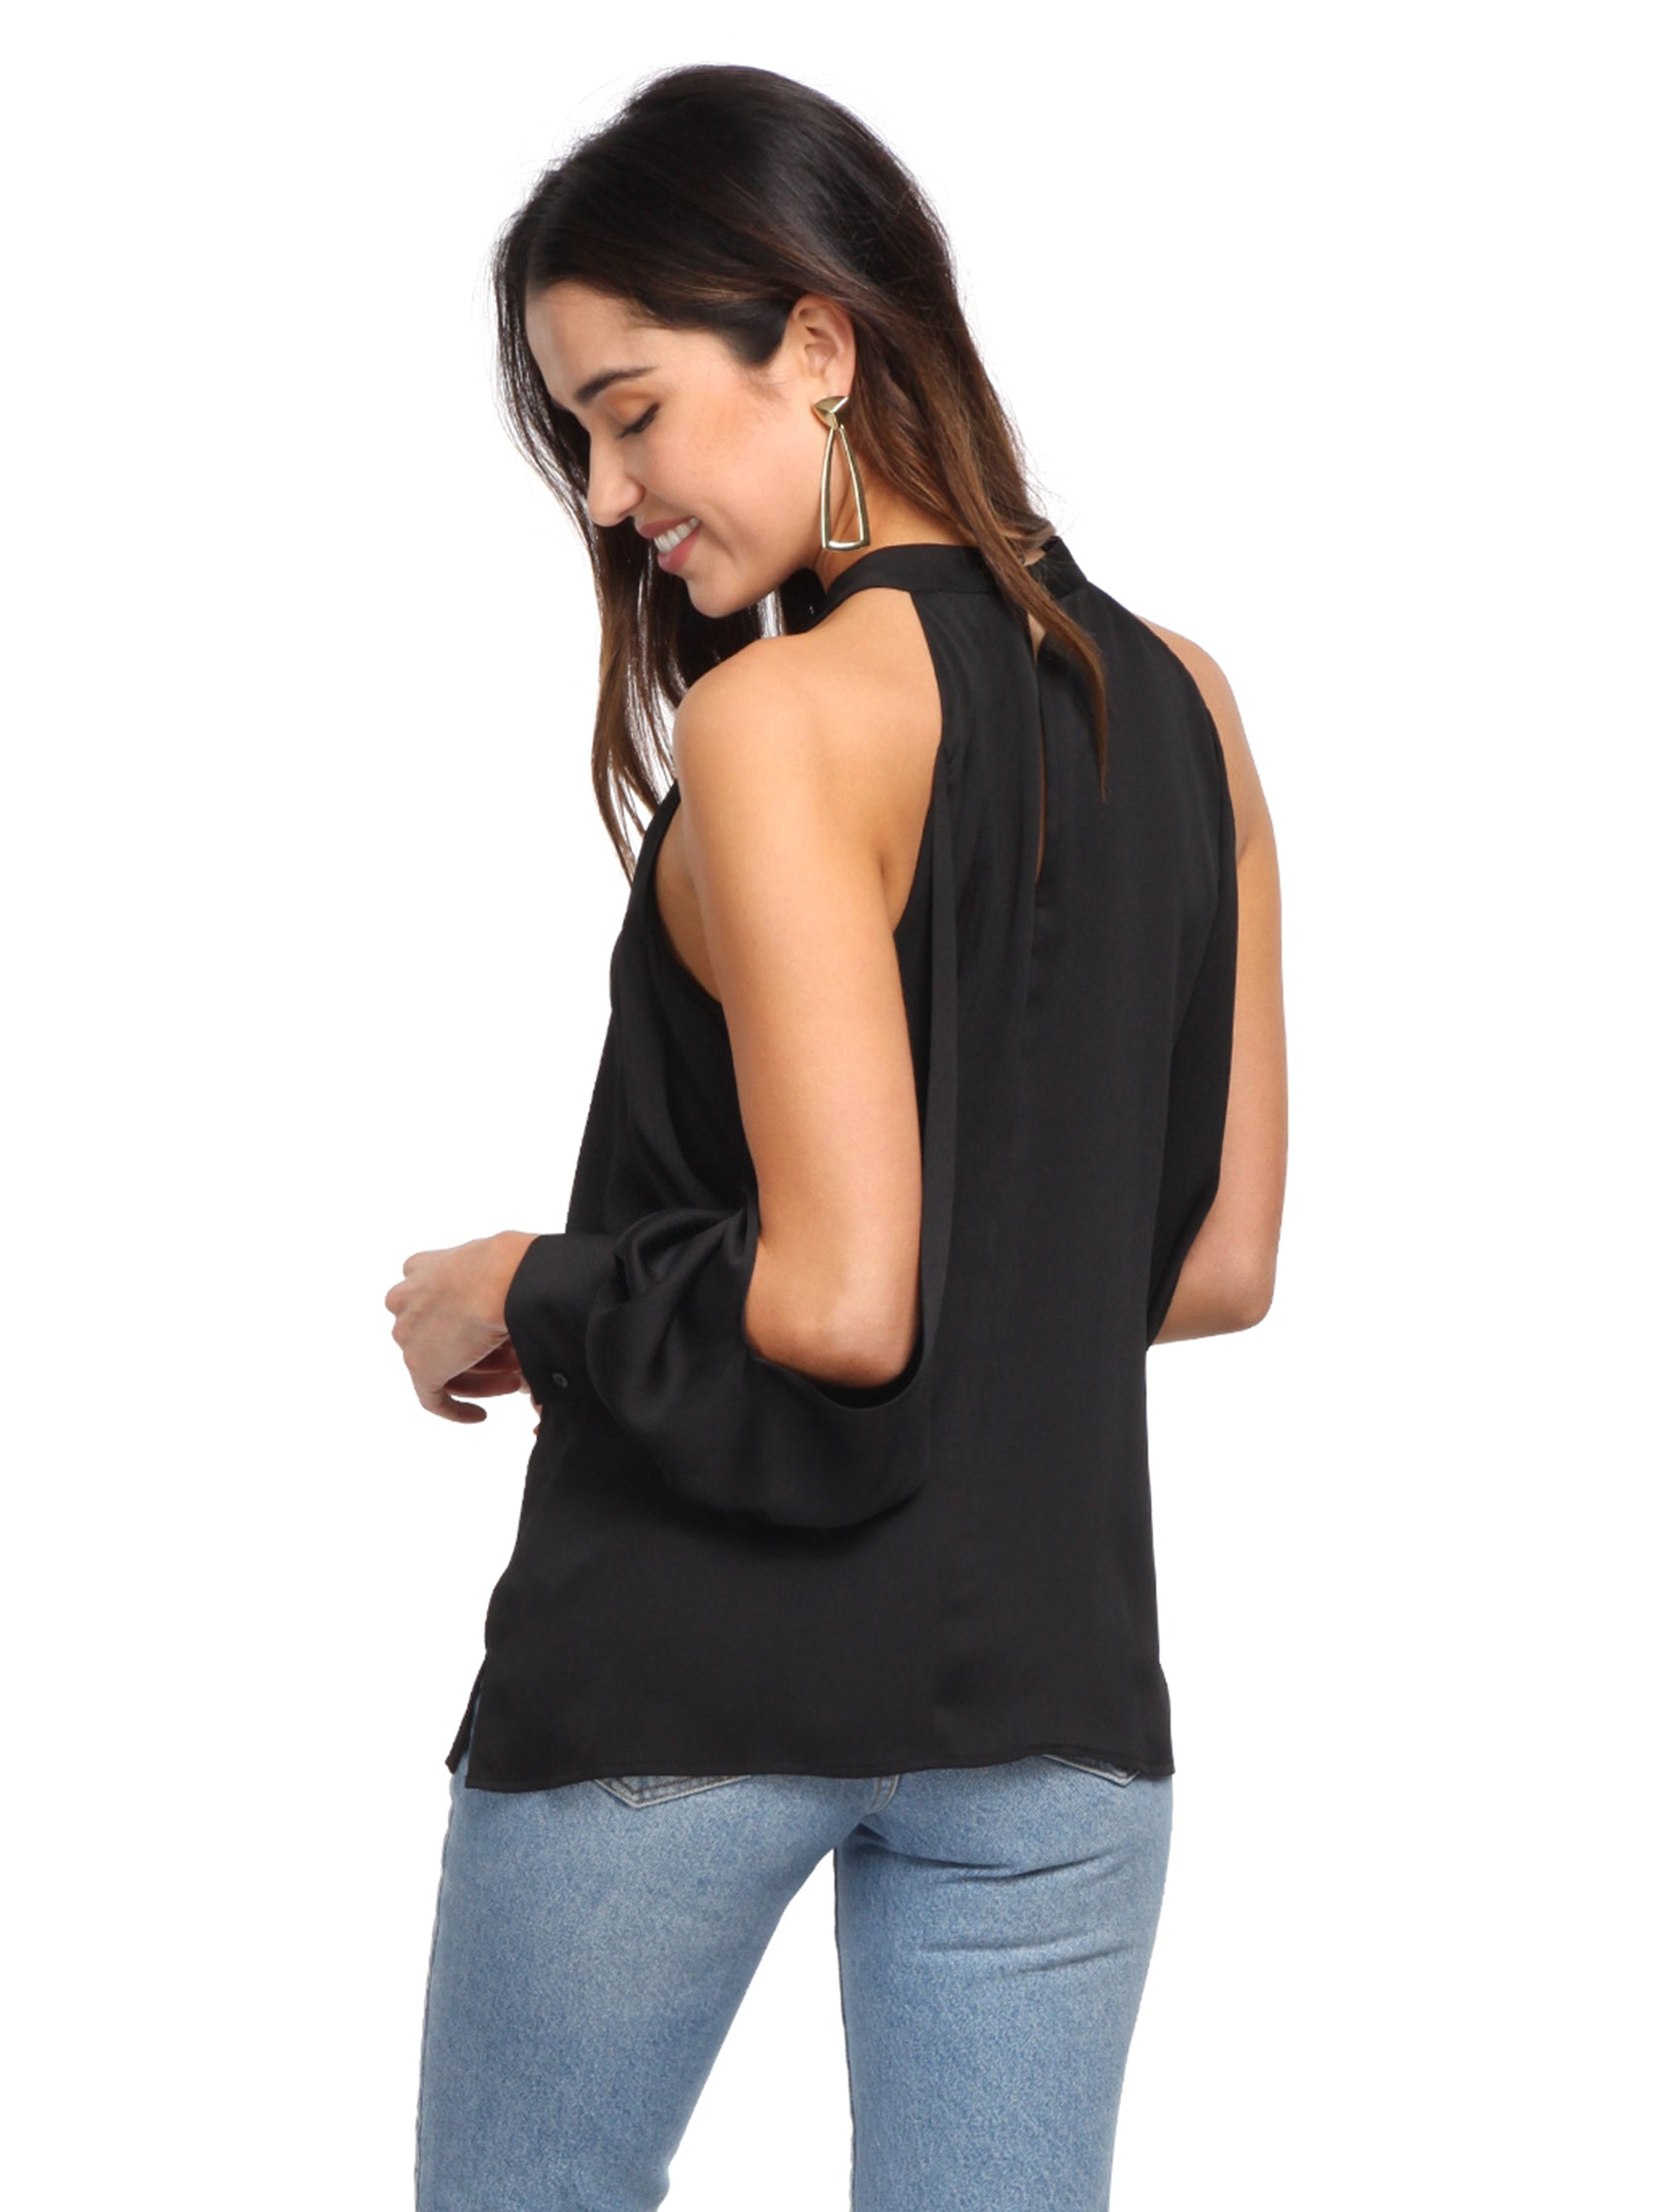 Women outfit in a top rental from 1.STATE called Cold Shoulder Blouson Sleeve Blouse